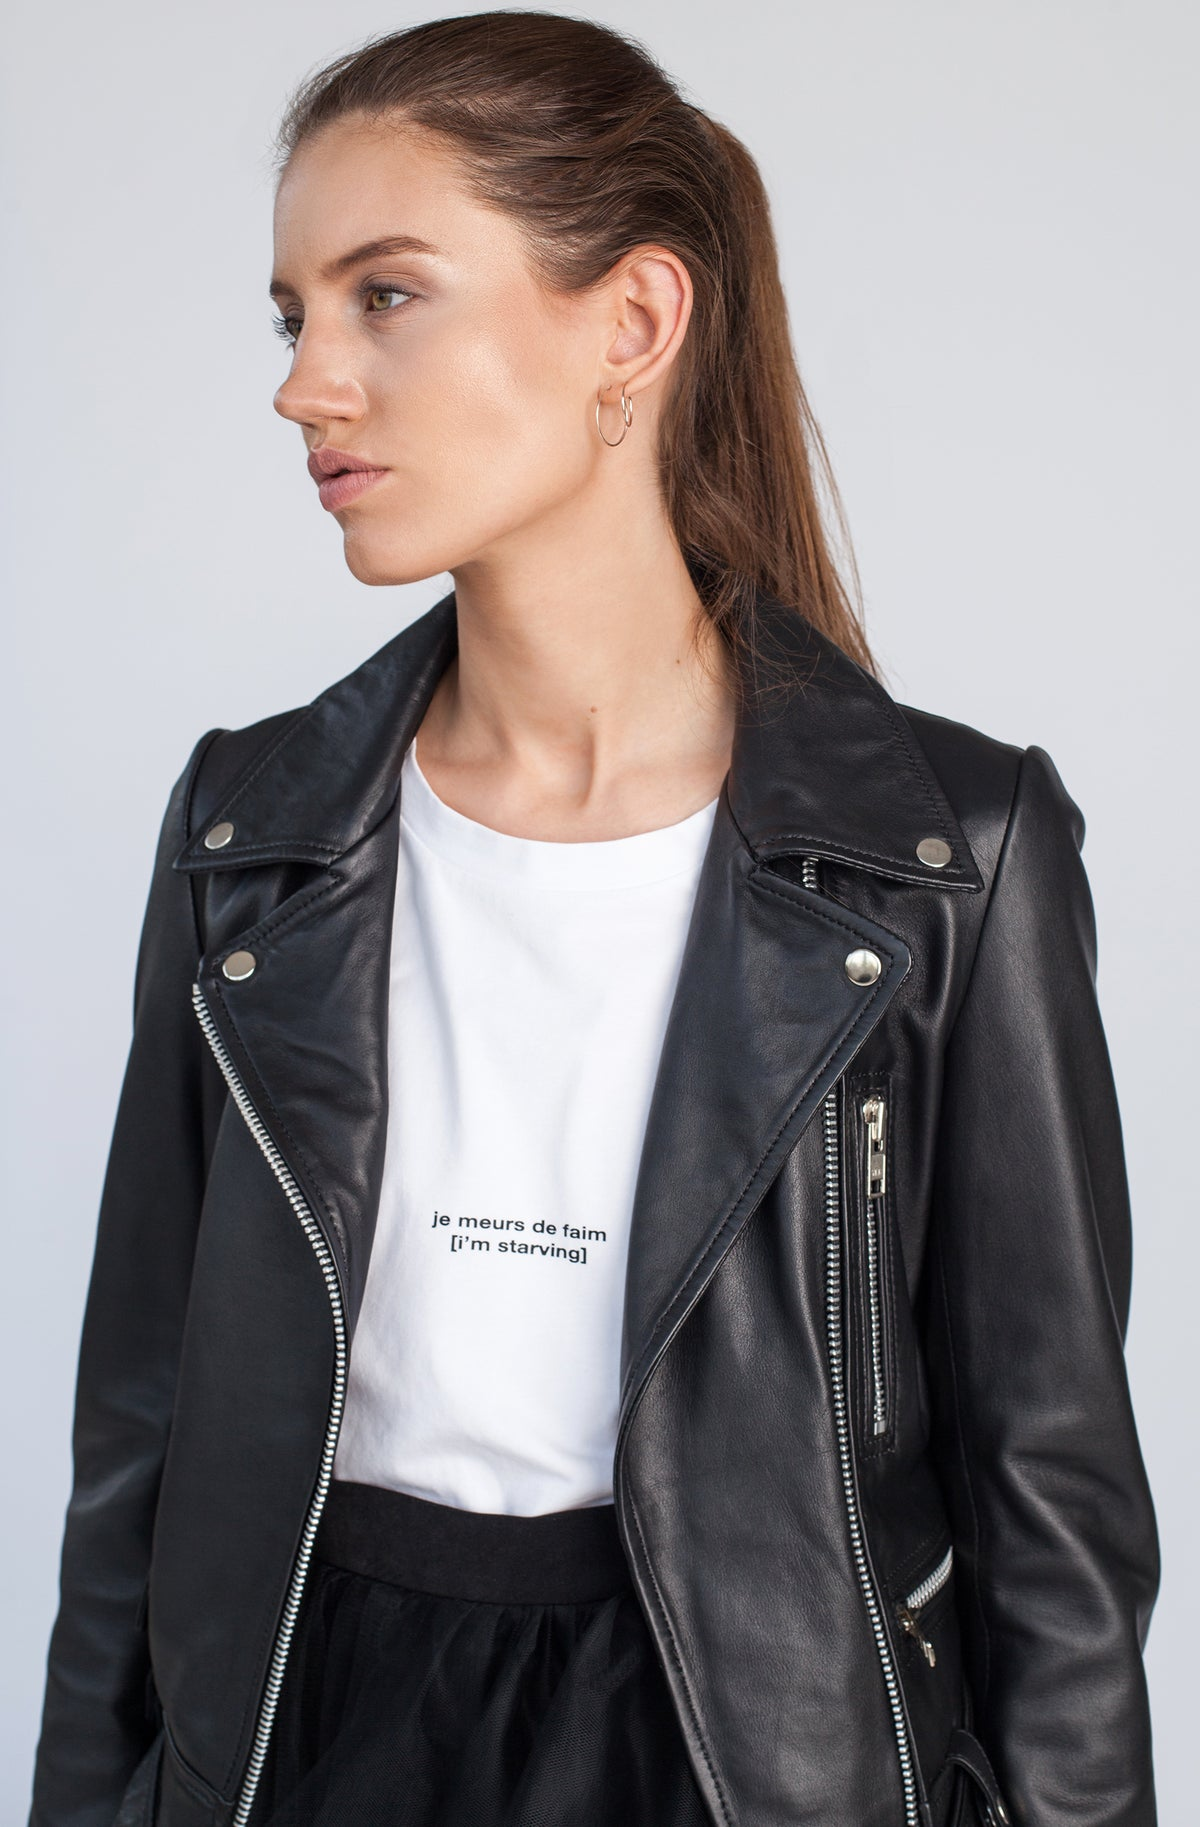 Black-Leather-Jacket-Outwear-Clothing-le-slap-silver-details.jpg